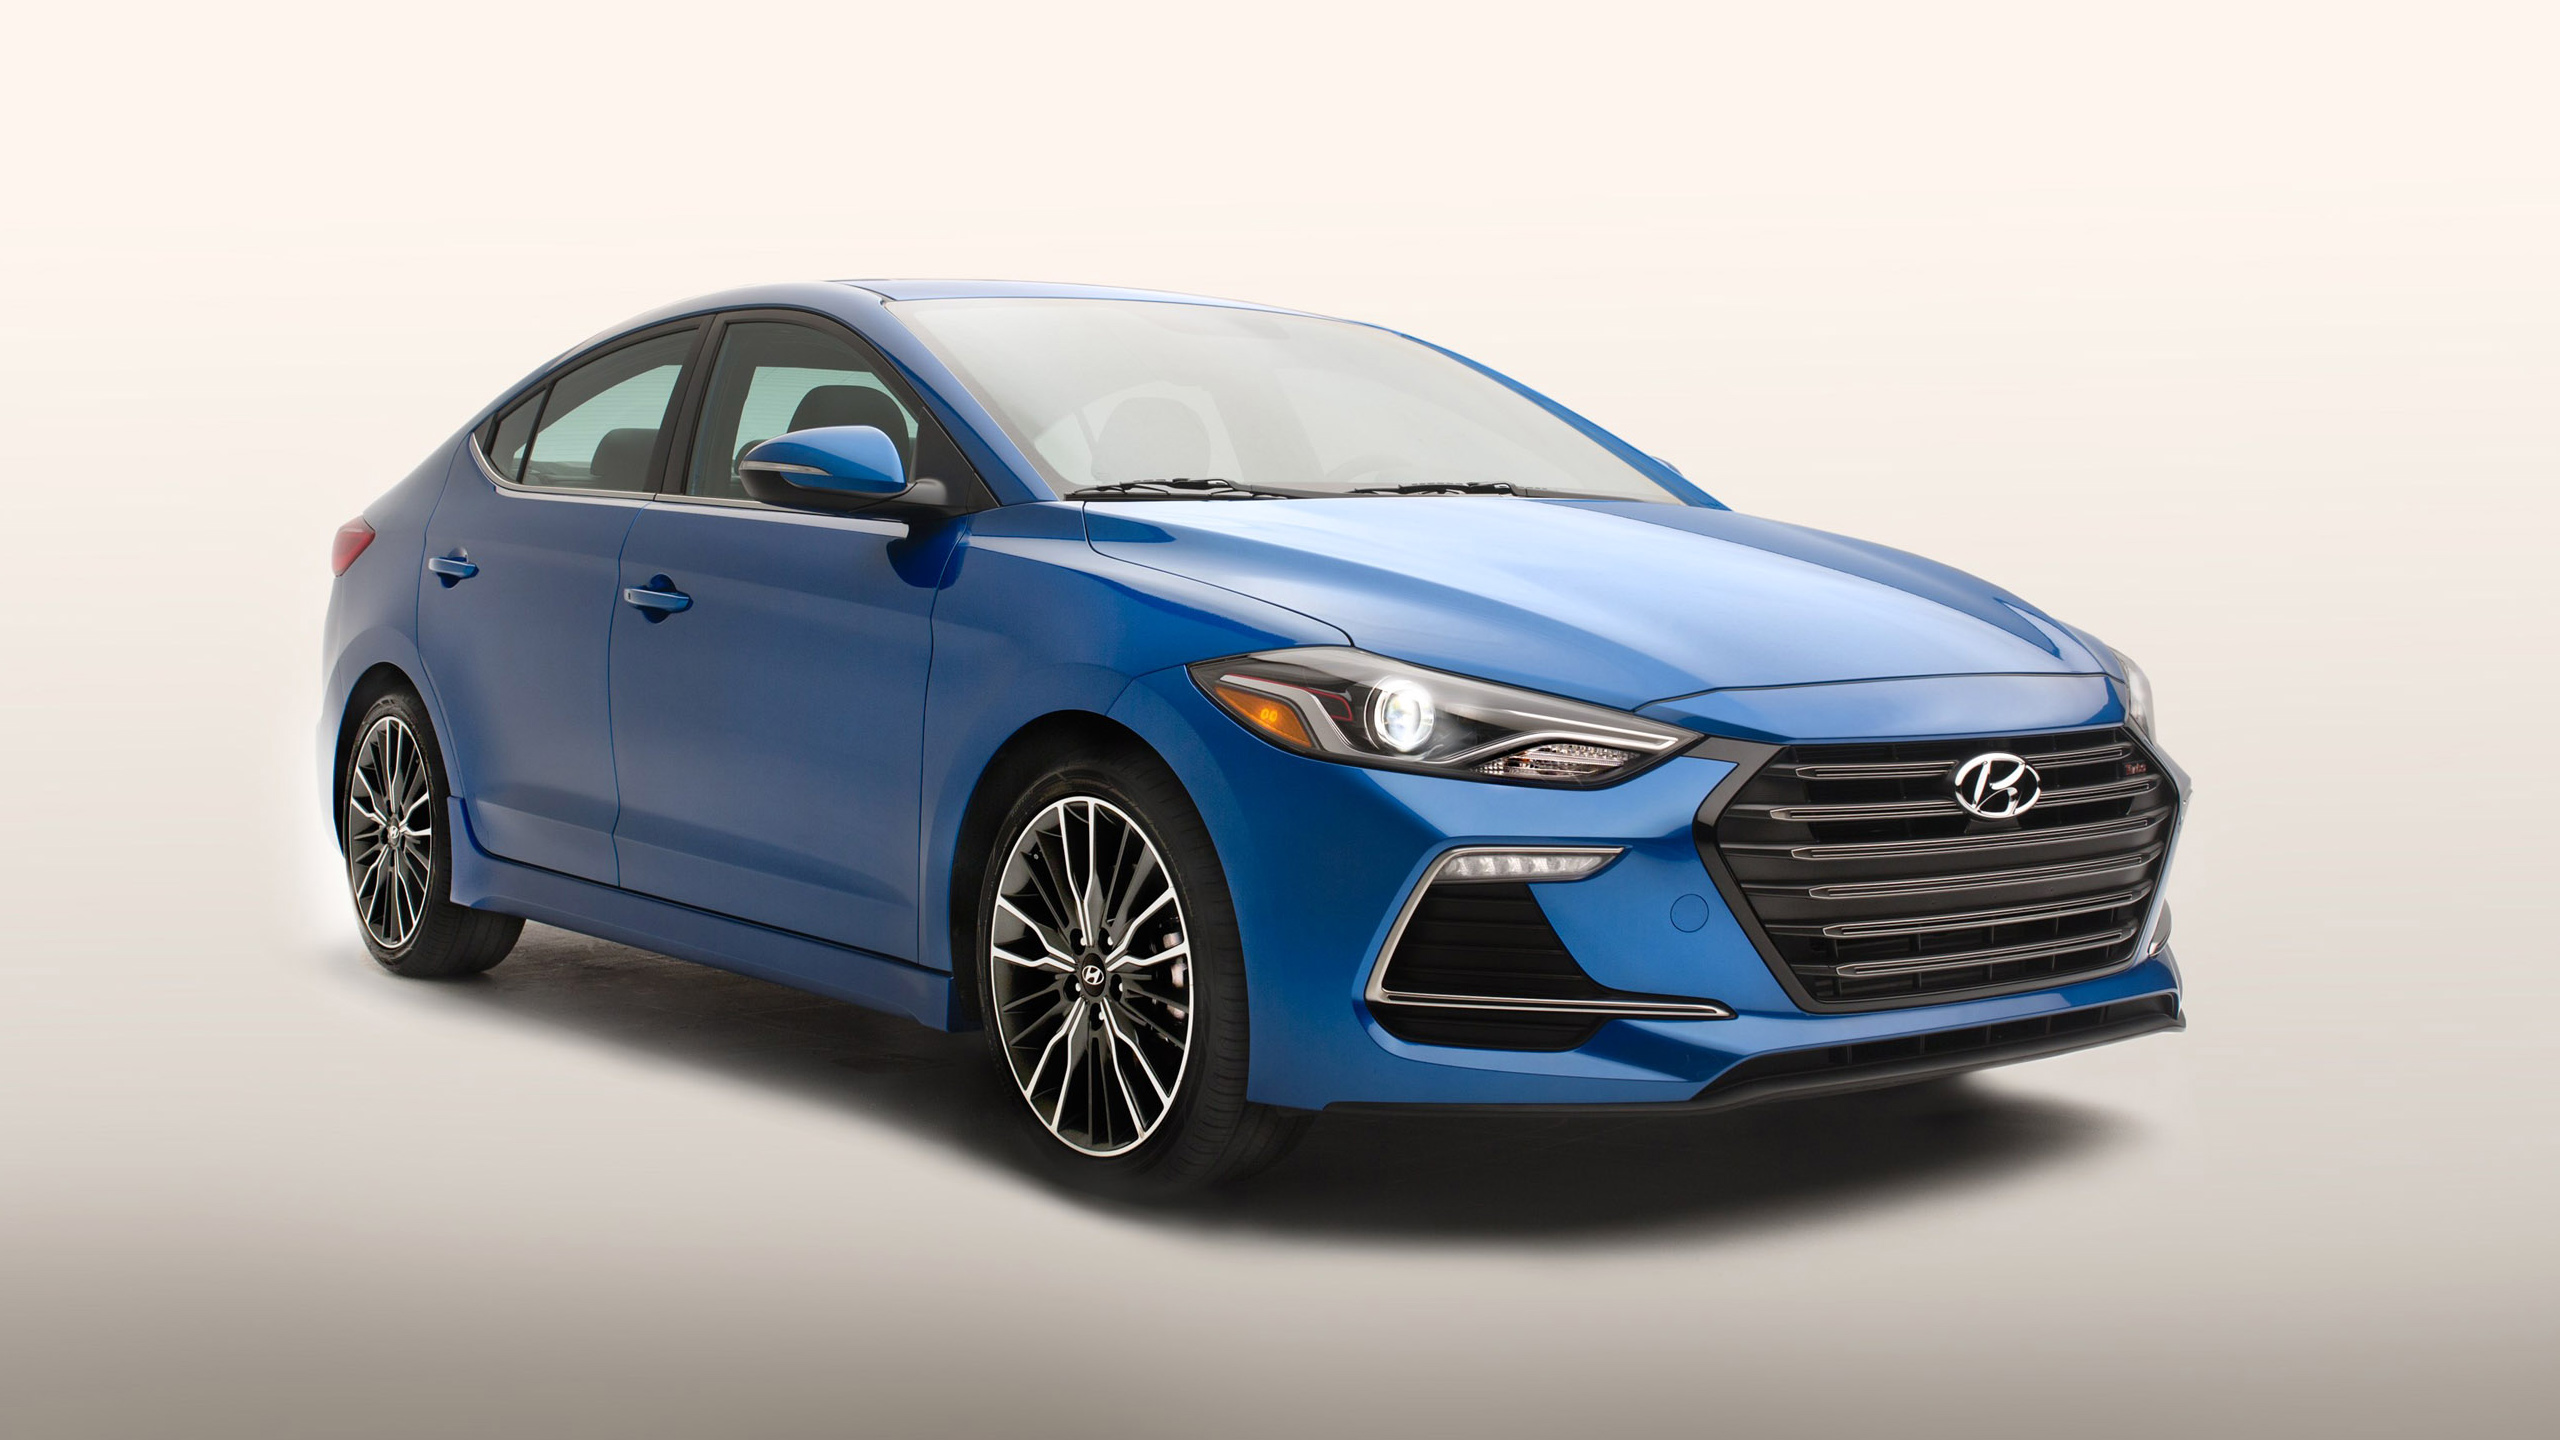 2017 hyundai elantra sport wallpaper hd car wallpapers id 6799